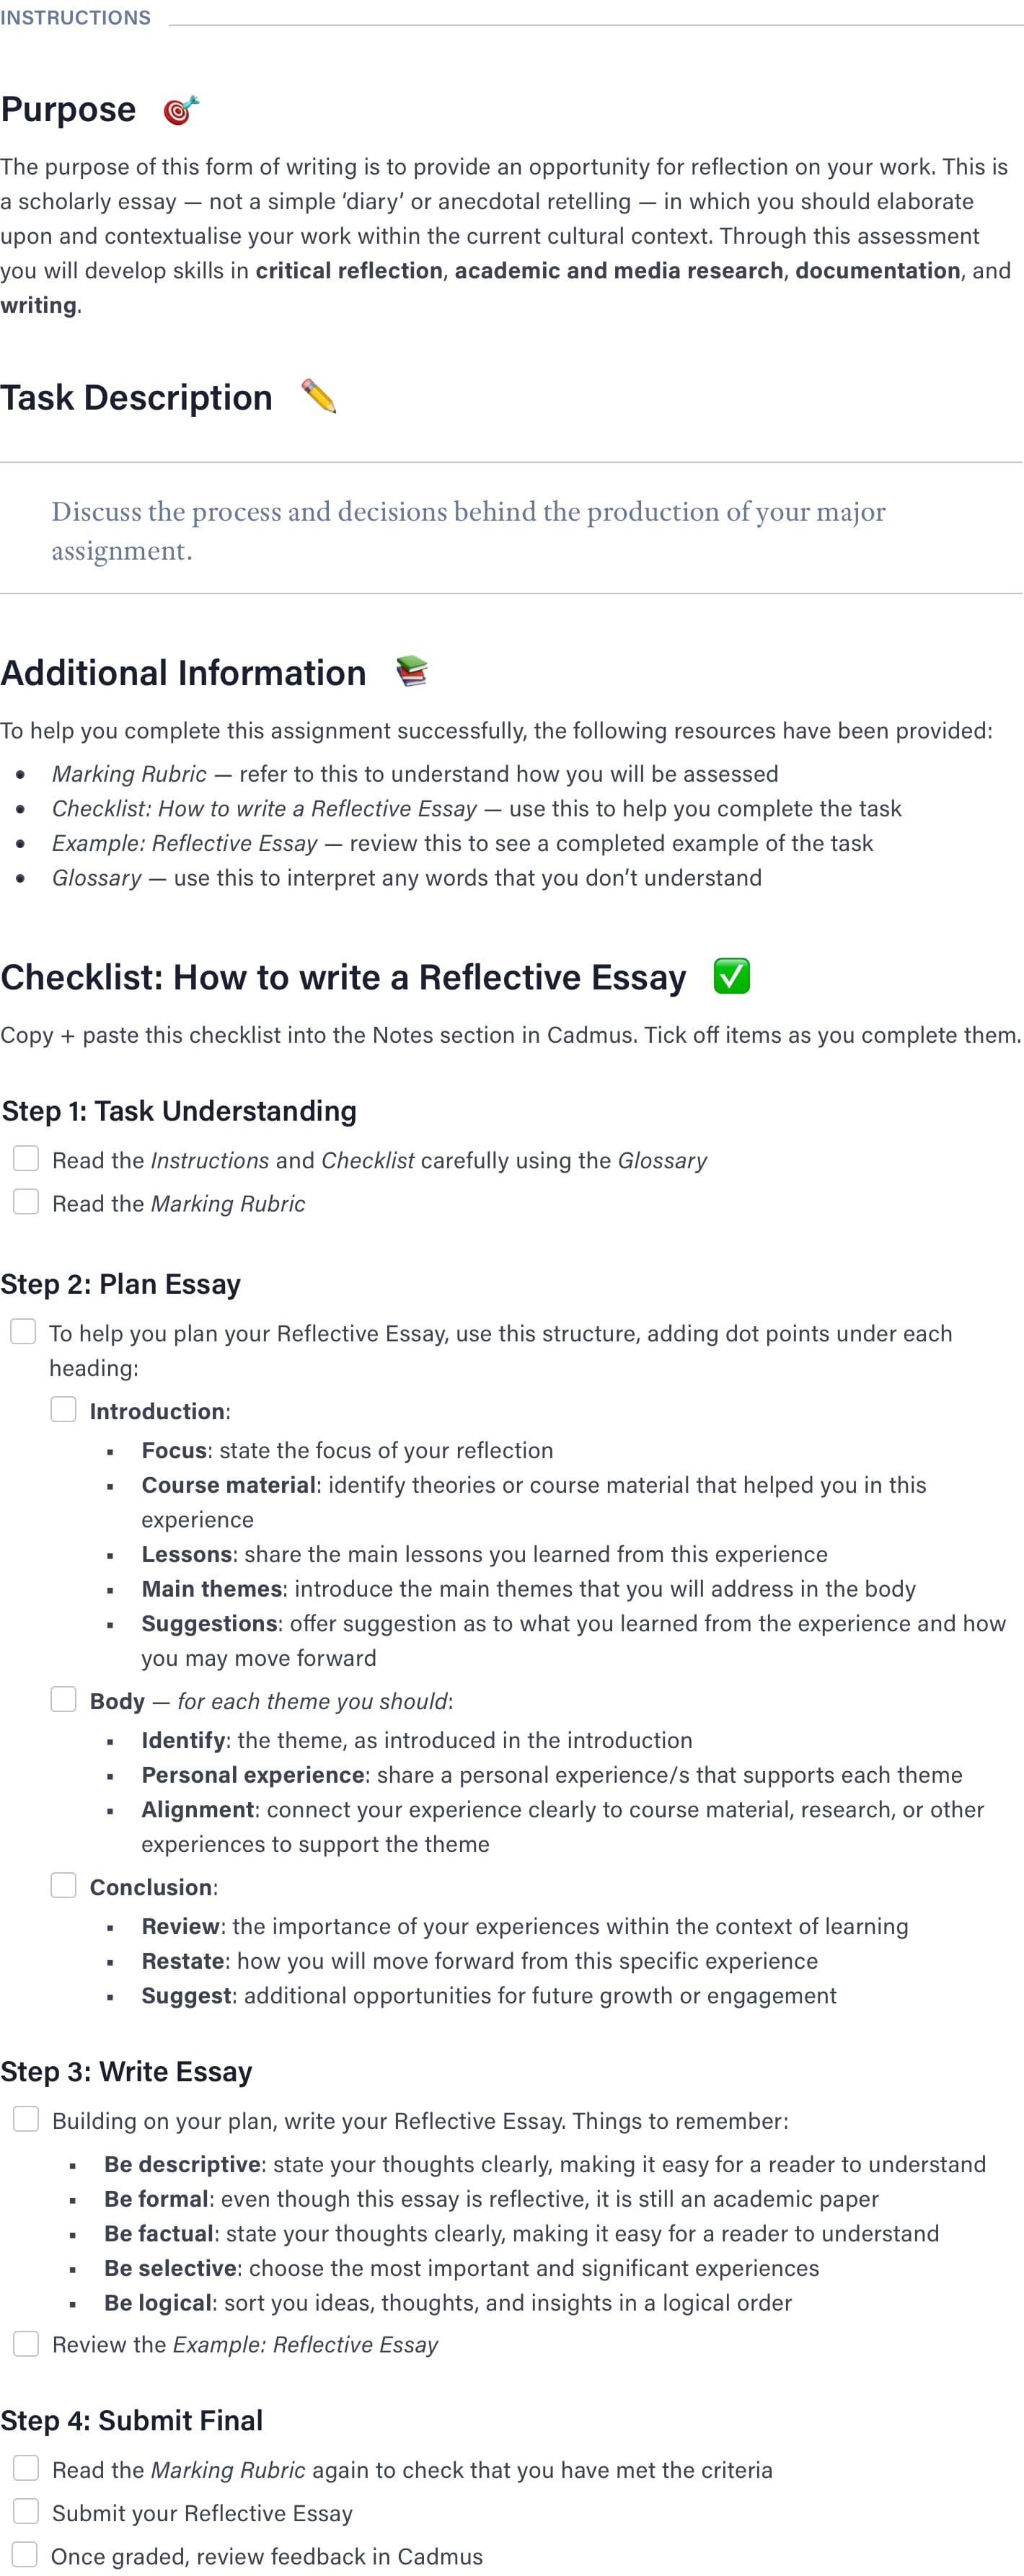 A preview of the reflective essay template in Cadmus